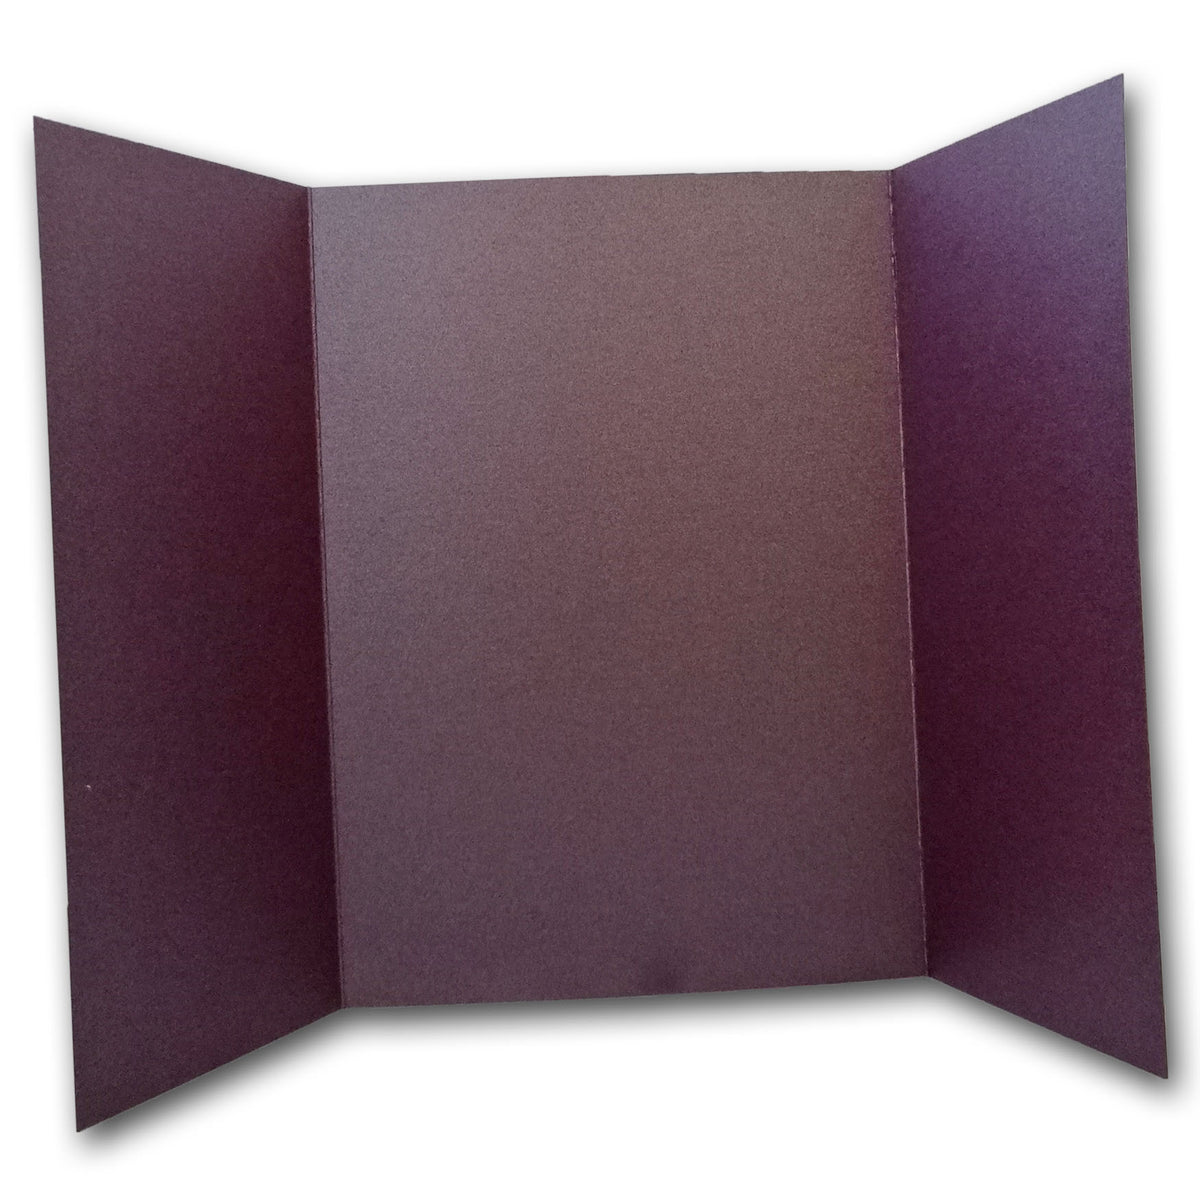 Shimmery Ruby 5x7 Gatefold Discount Card Stock DIY Invitations